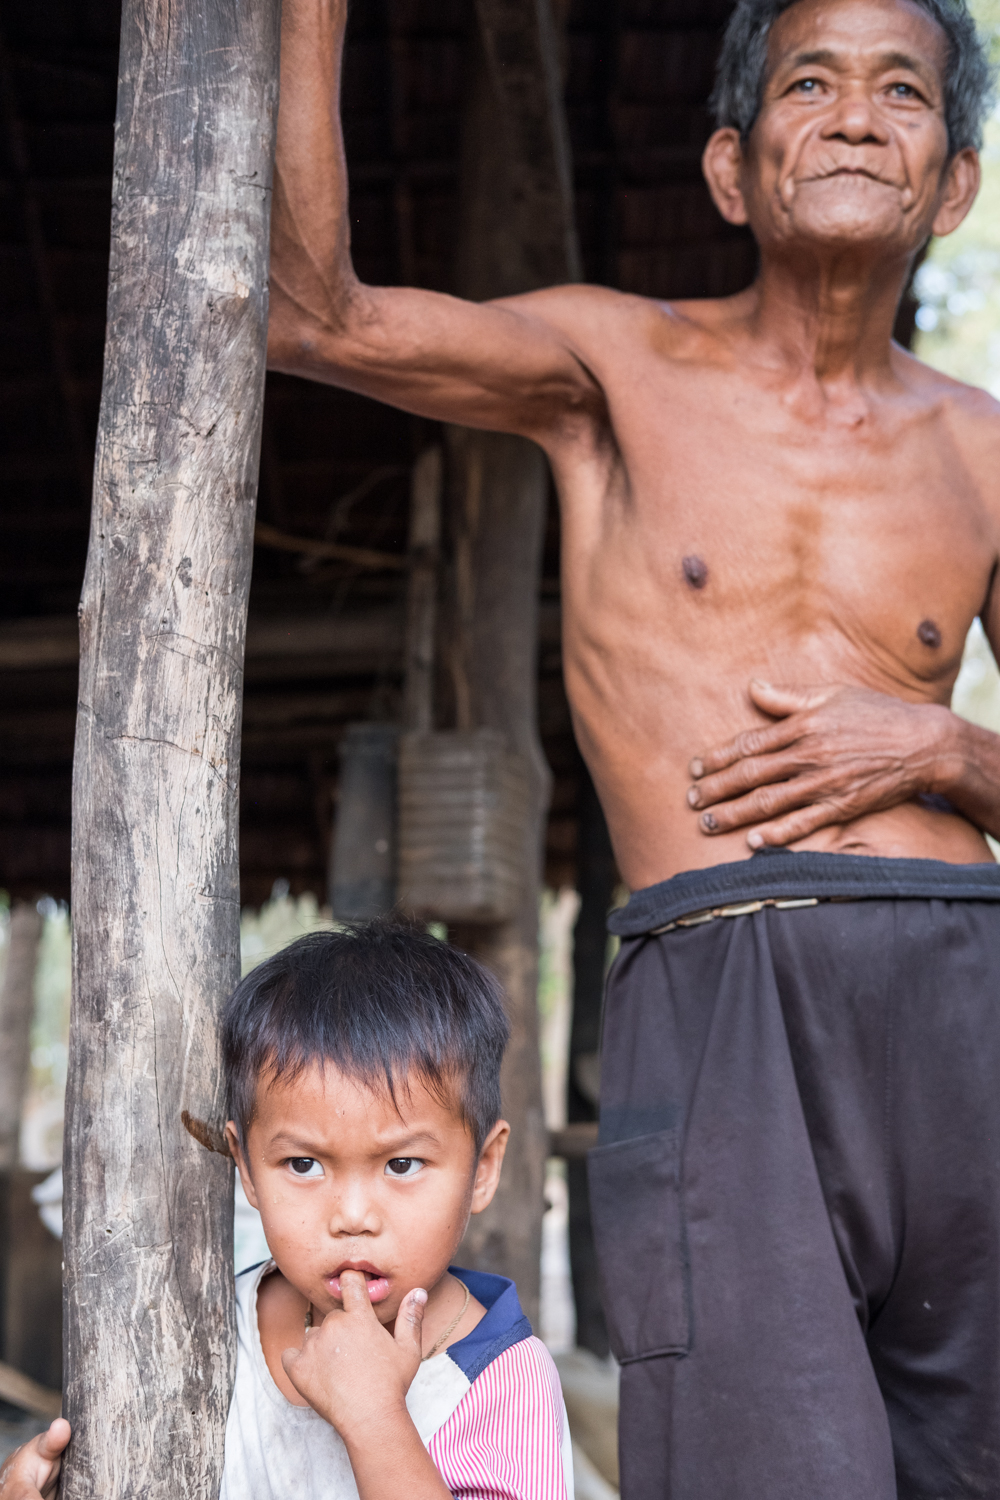 An uncle and his nephew pause next to a structure in Kampong Chhnang, Cambodia.